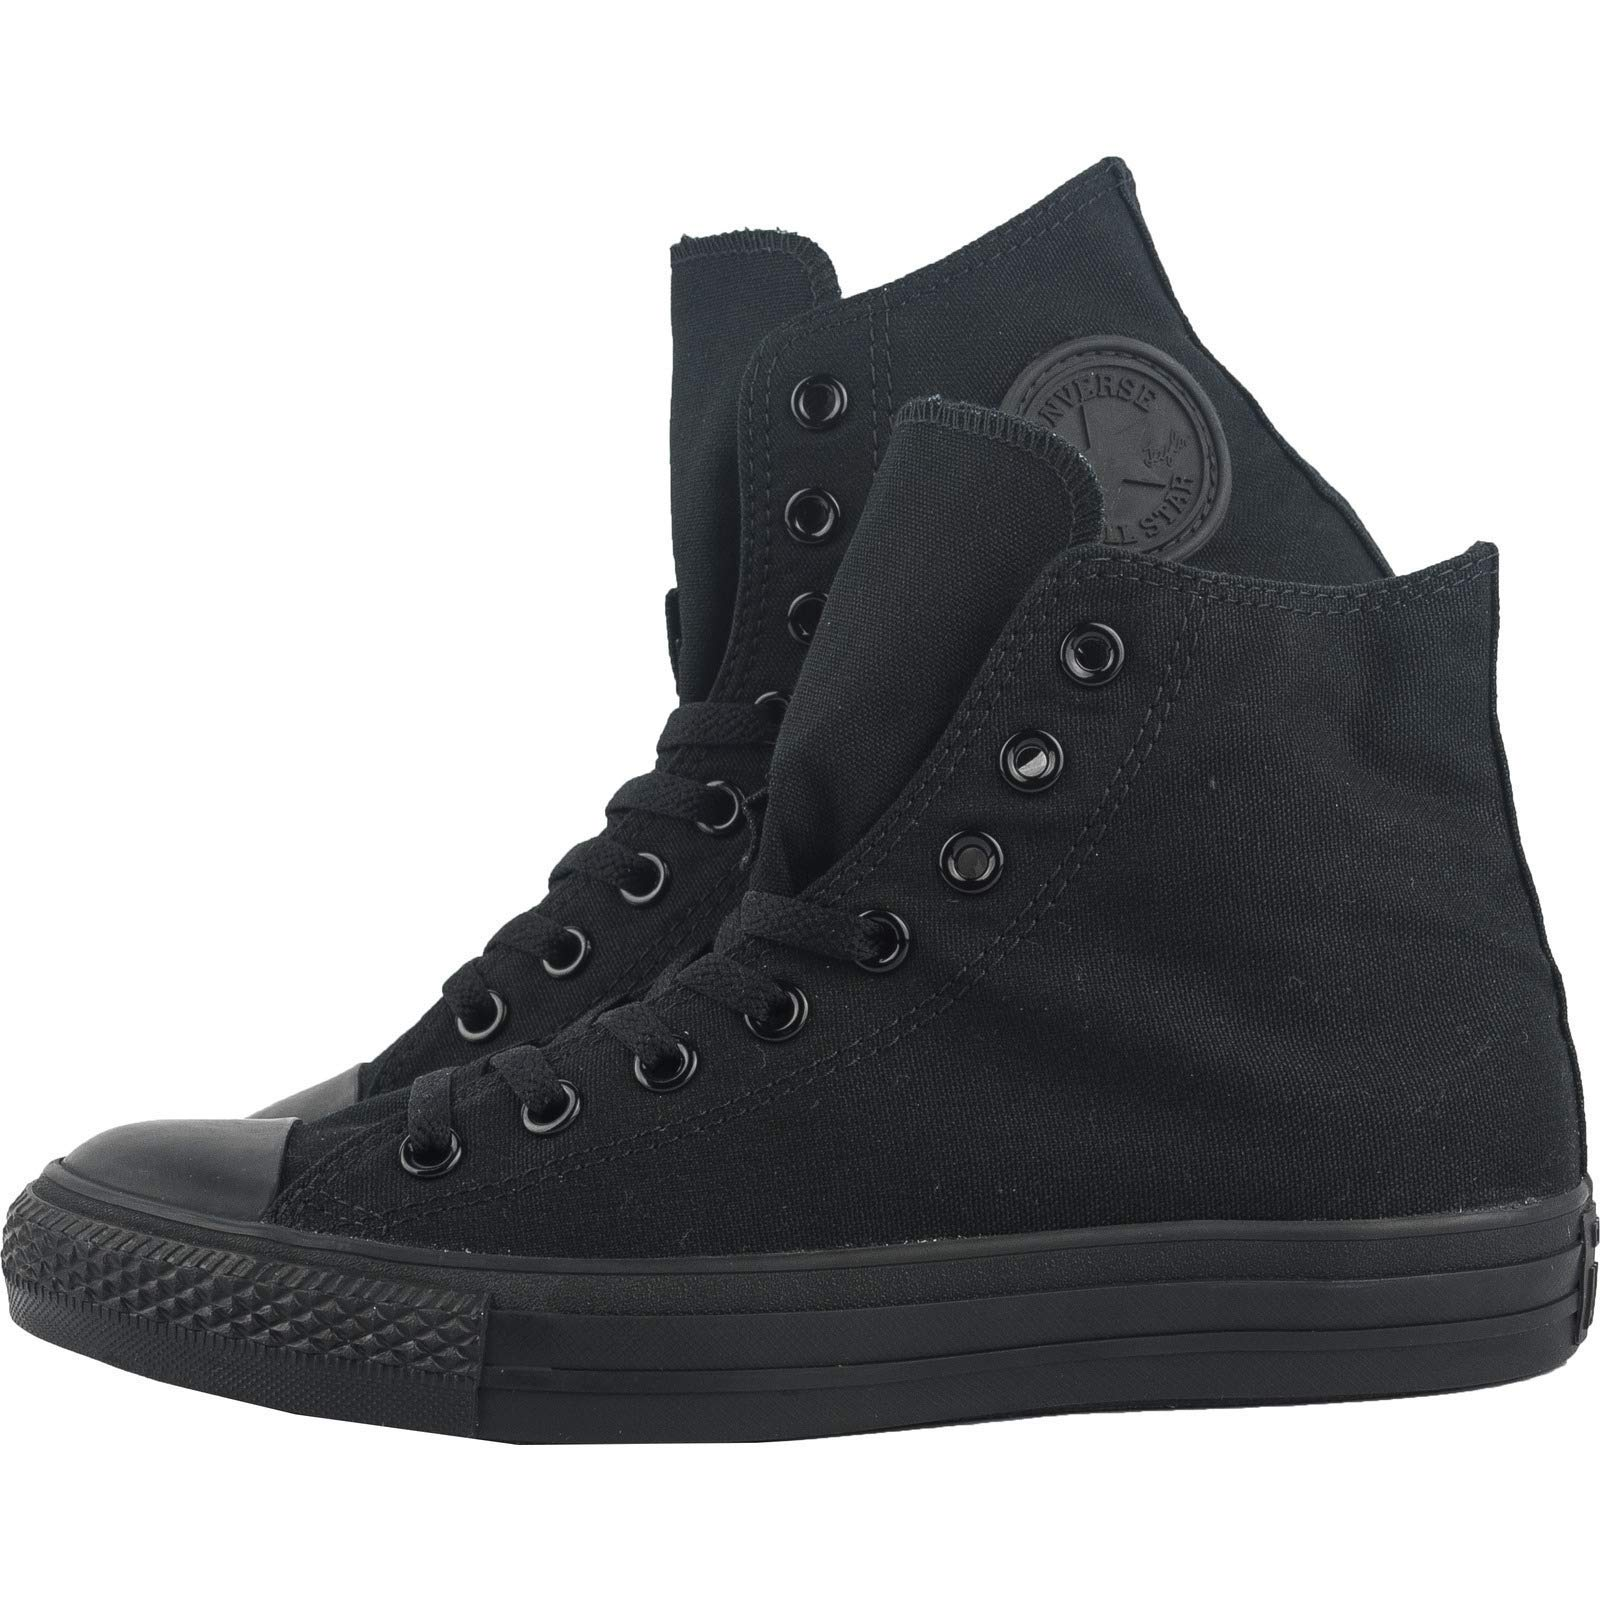 0b300b8dfb710f Galleon - Converse Chuck Taylor All Star High Top Black Monochrome M3310  Mens (11)